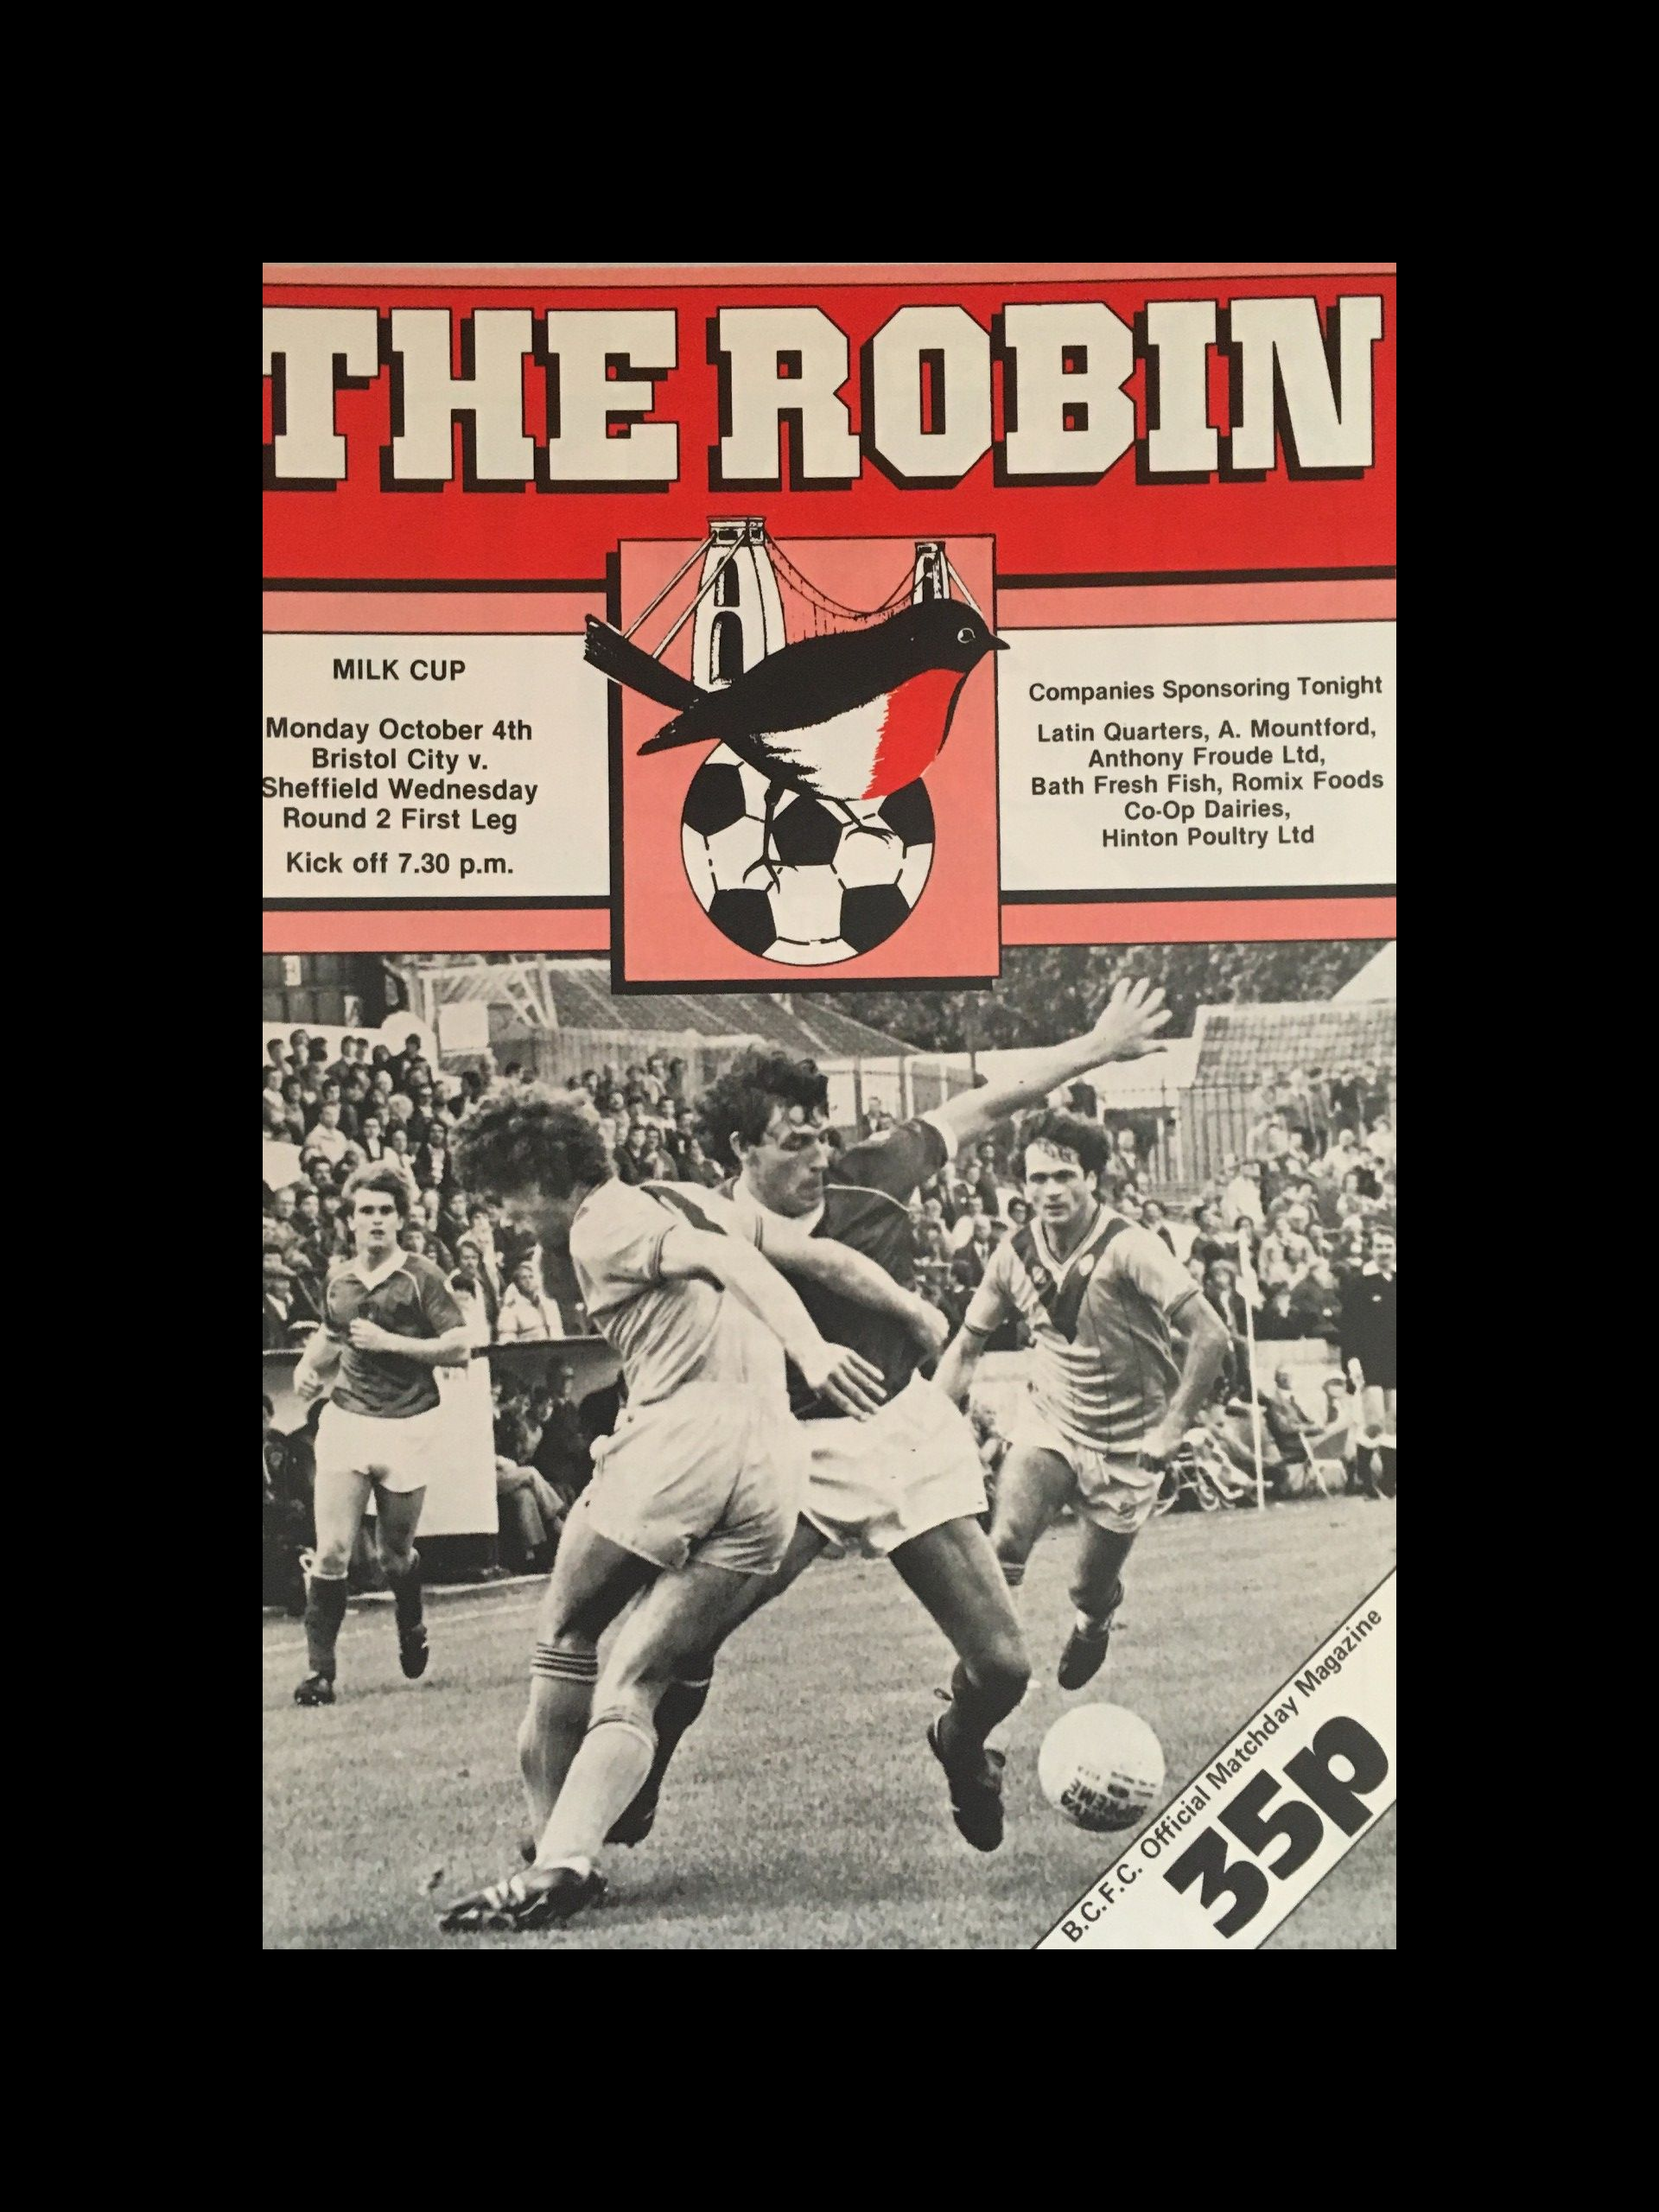 Bristol City v Sheffield Wednesday 04-10-82 Programme